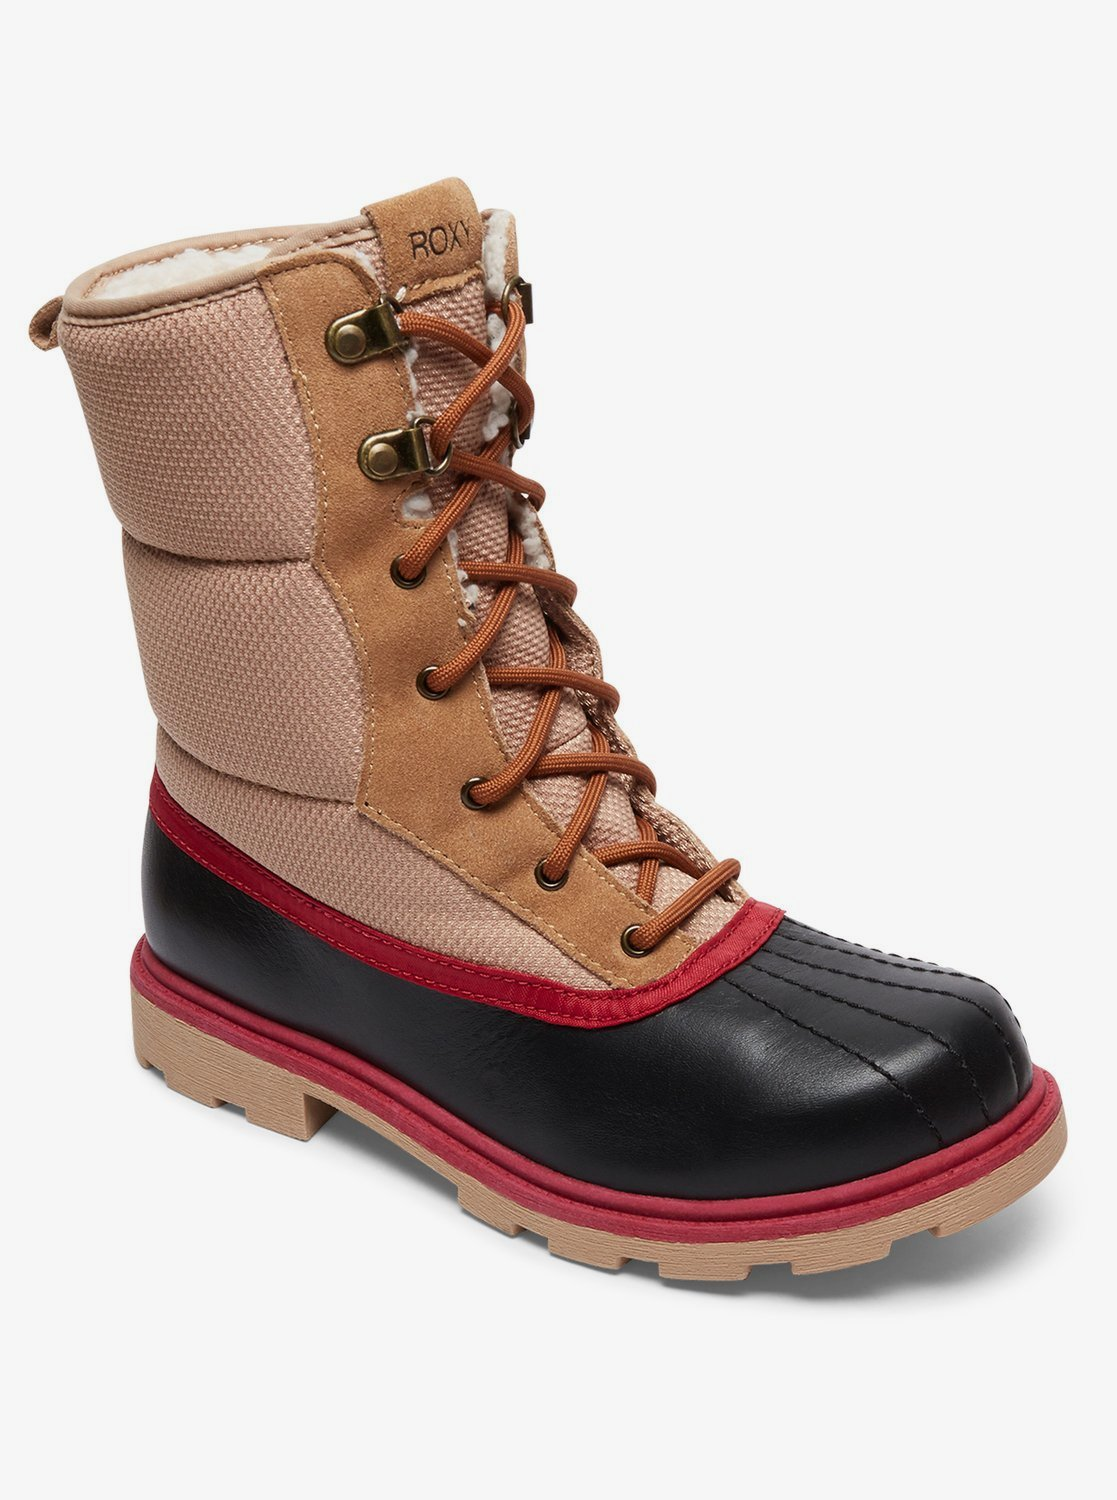 Canby Waterproof Snow Boots for Women